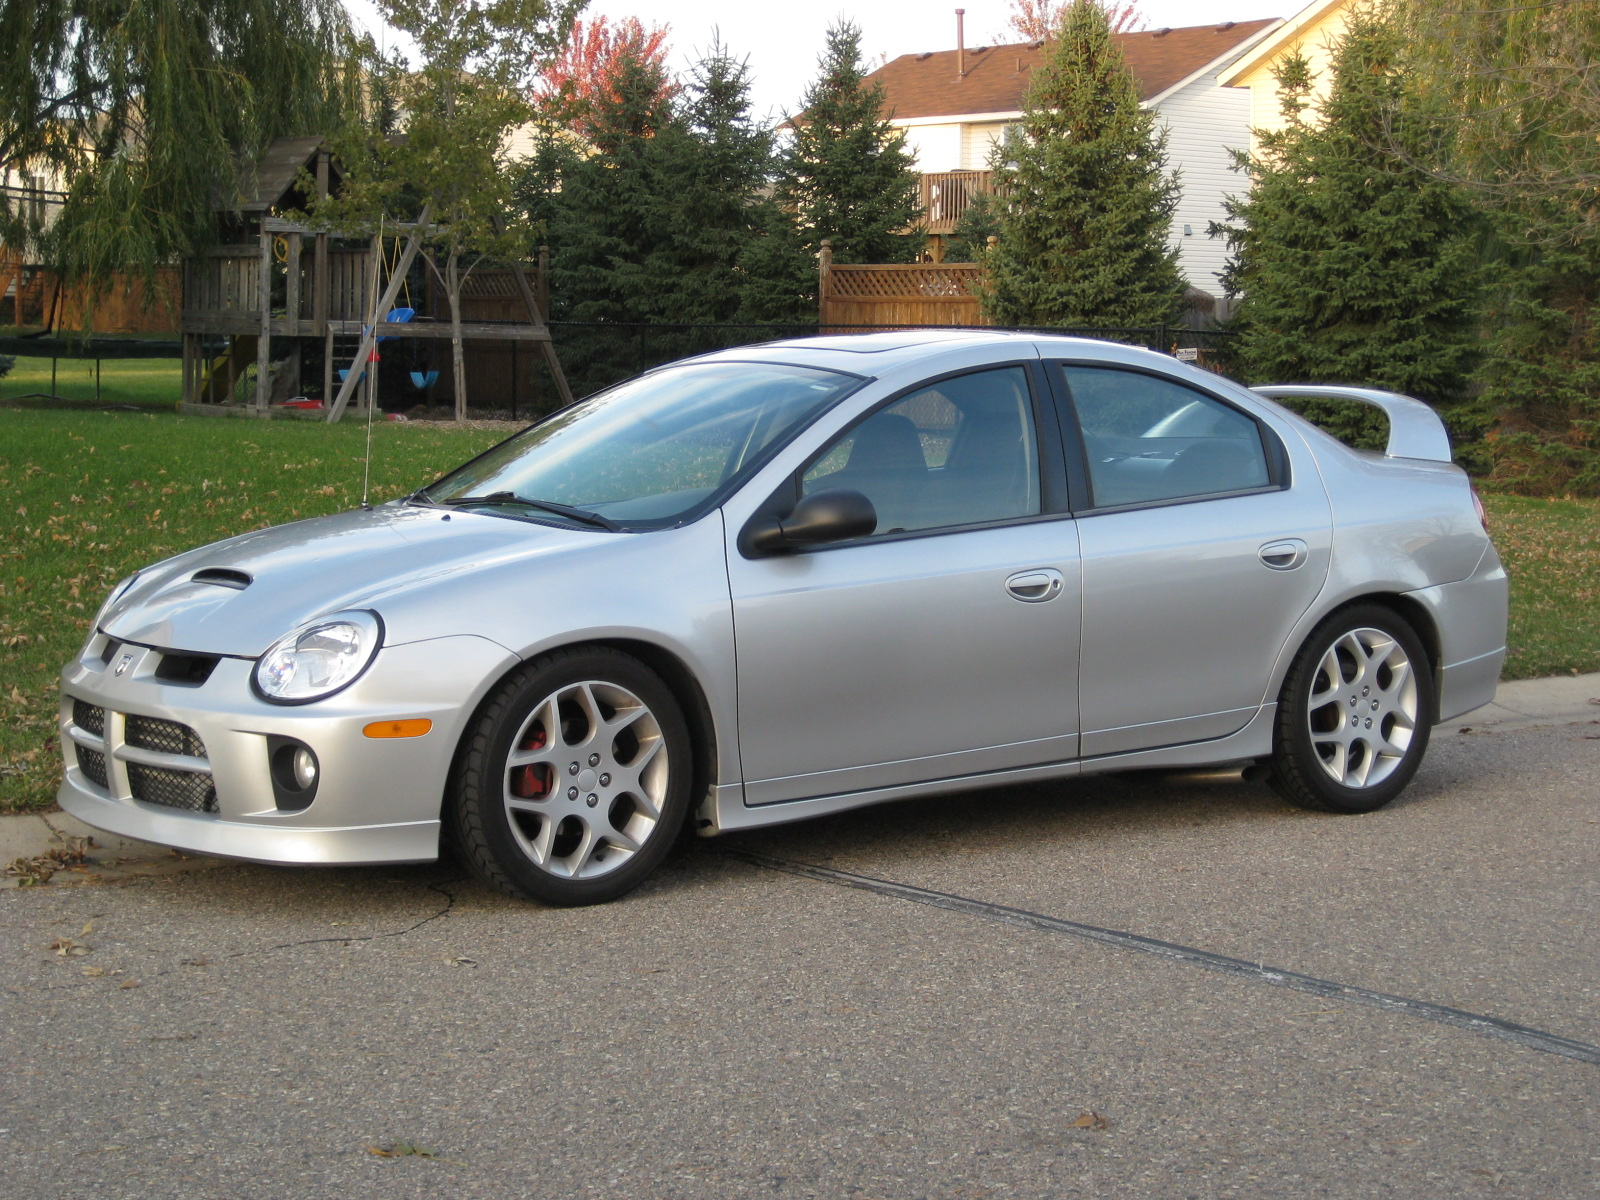 dodge neon srt 4 for sale classifieds insurance. Black Bedroom Furniture Sets. Home Design Ideas